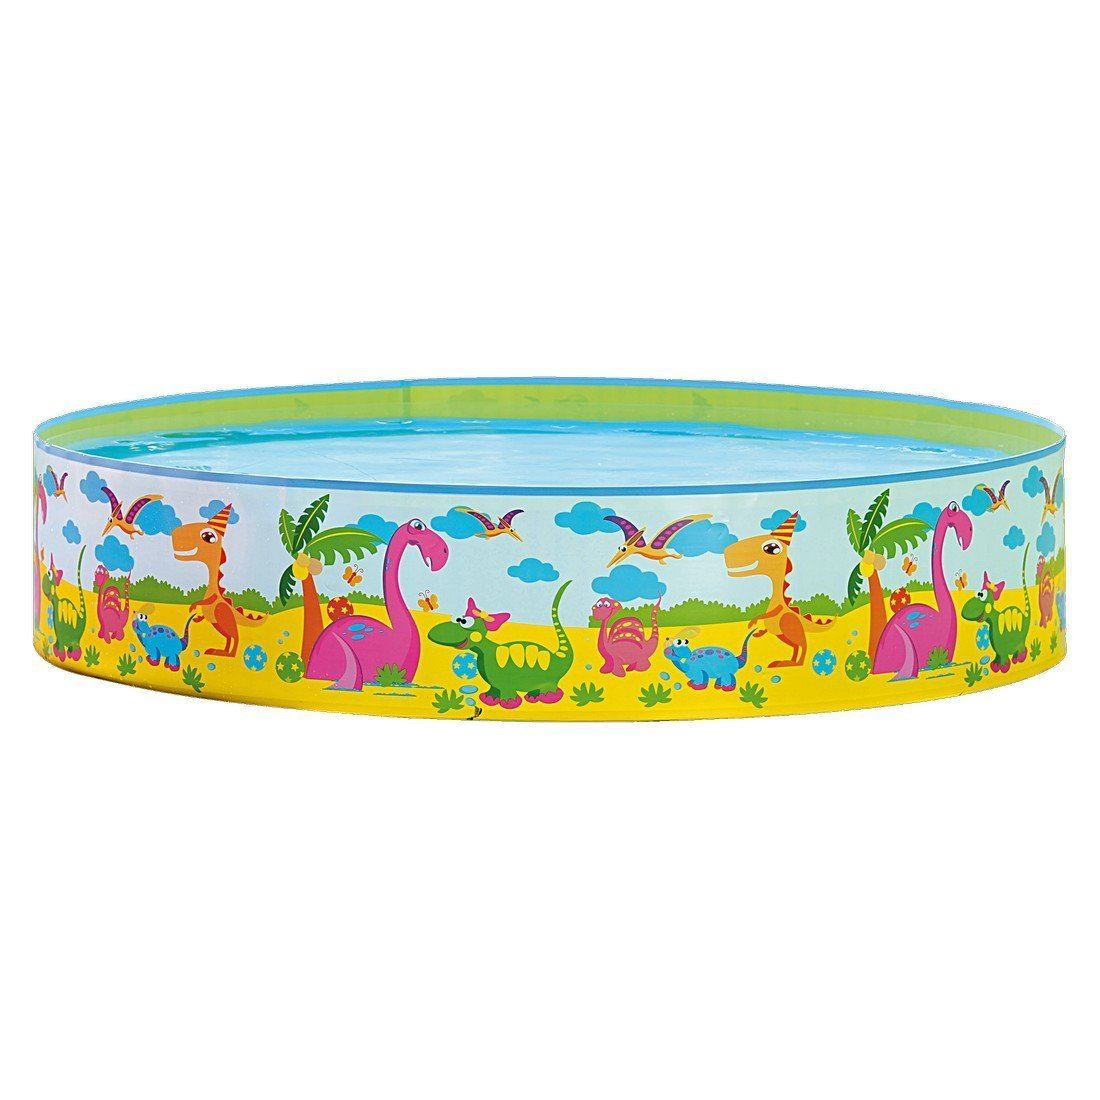 Jilong Dinosaur Rigid Play Pool 240 Cm X 38 Cm (94 X 15